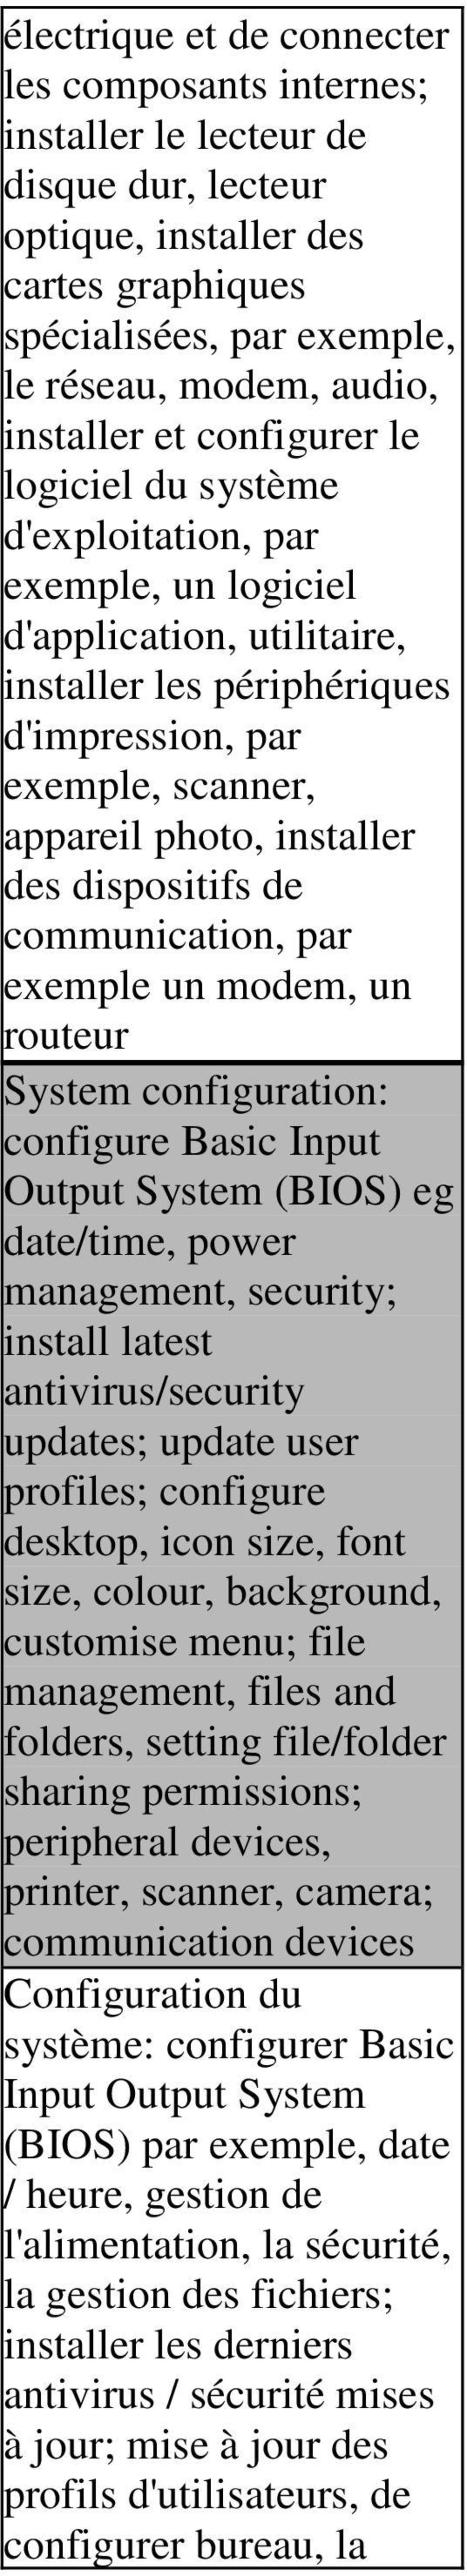 dispositifs de communication, par exemple un modem, un routeur System configuration: configure Basic Input Output System (BIOS) eg date/time, power management, security; install latest